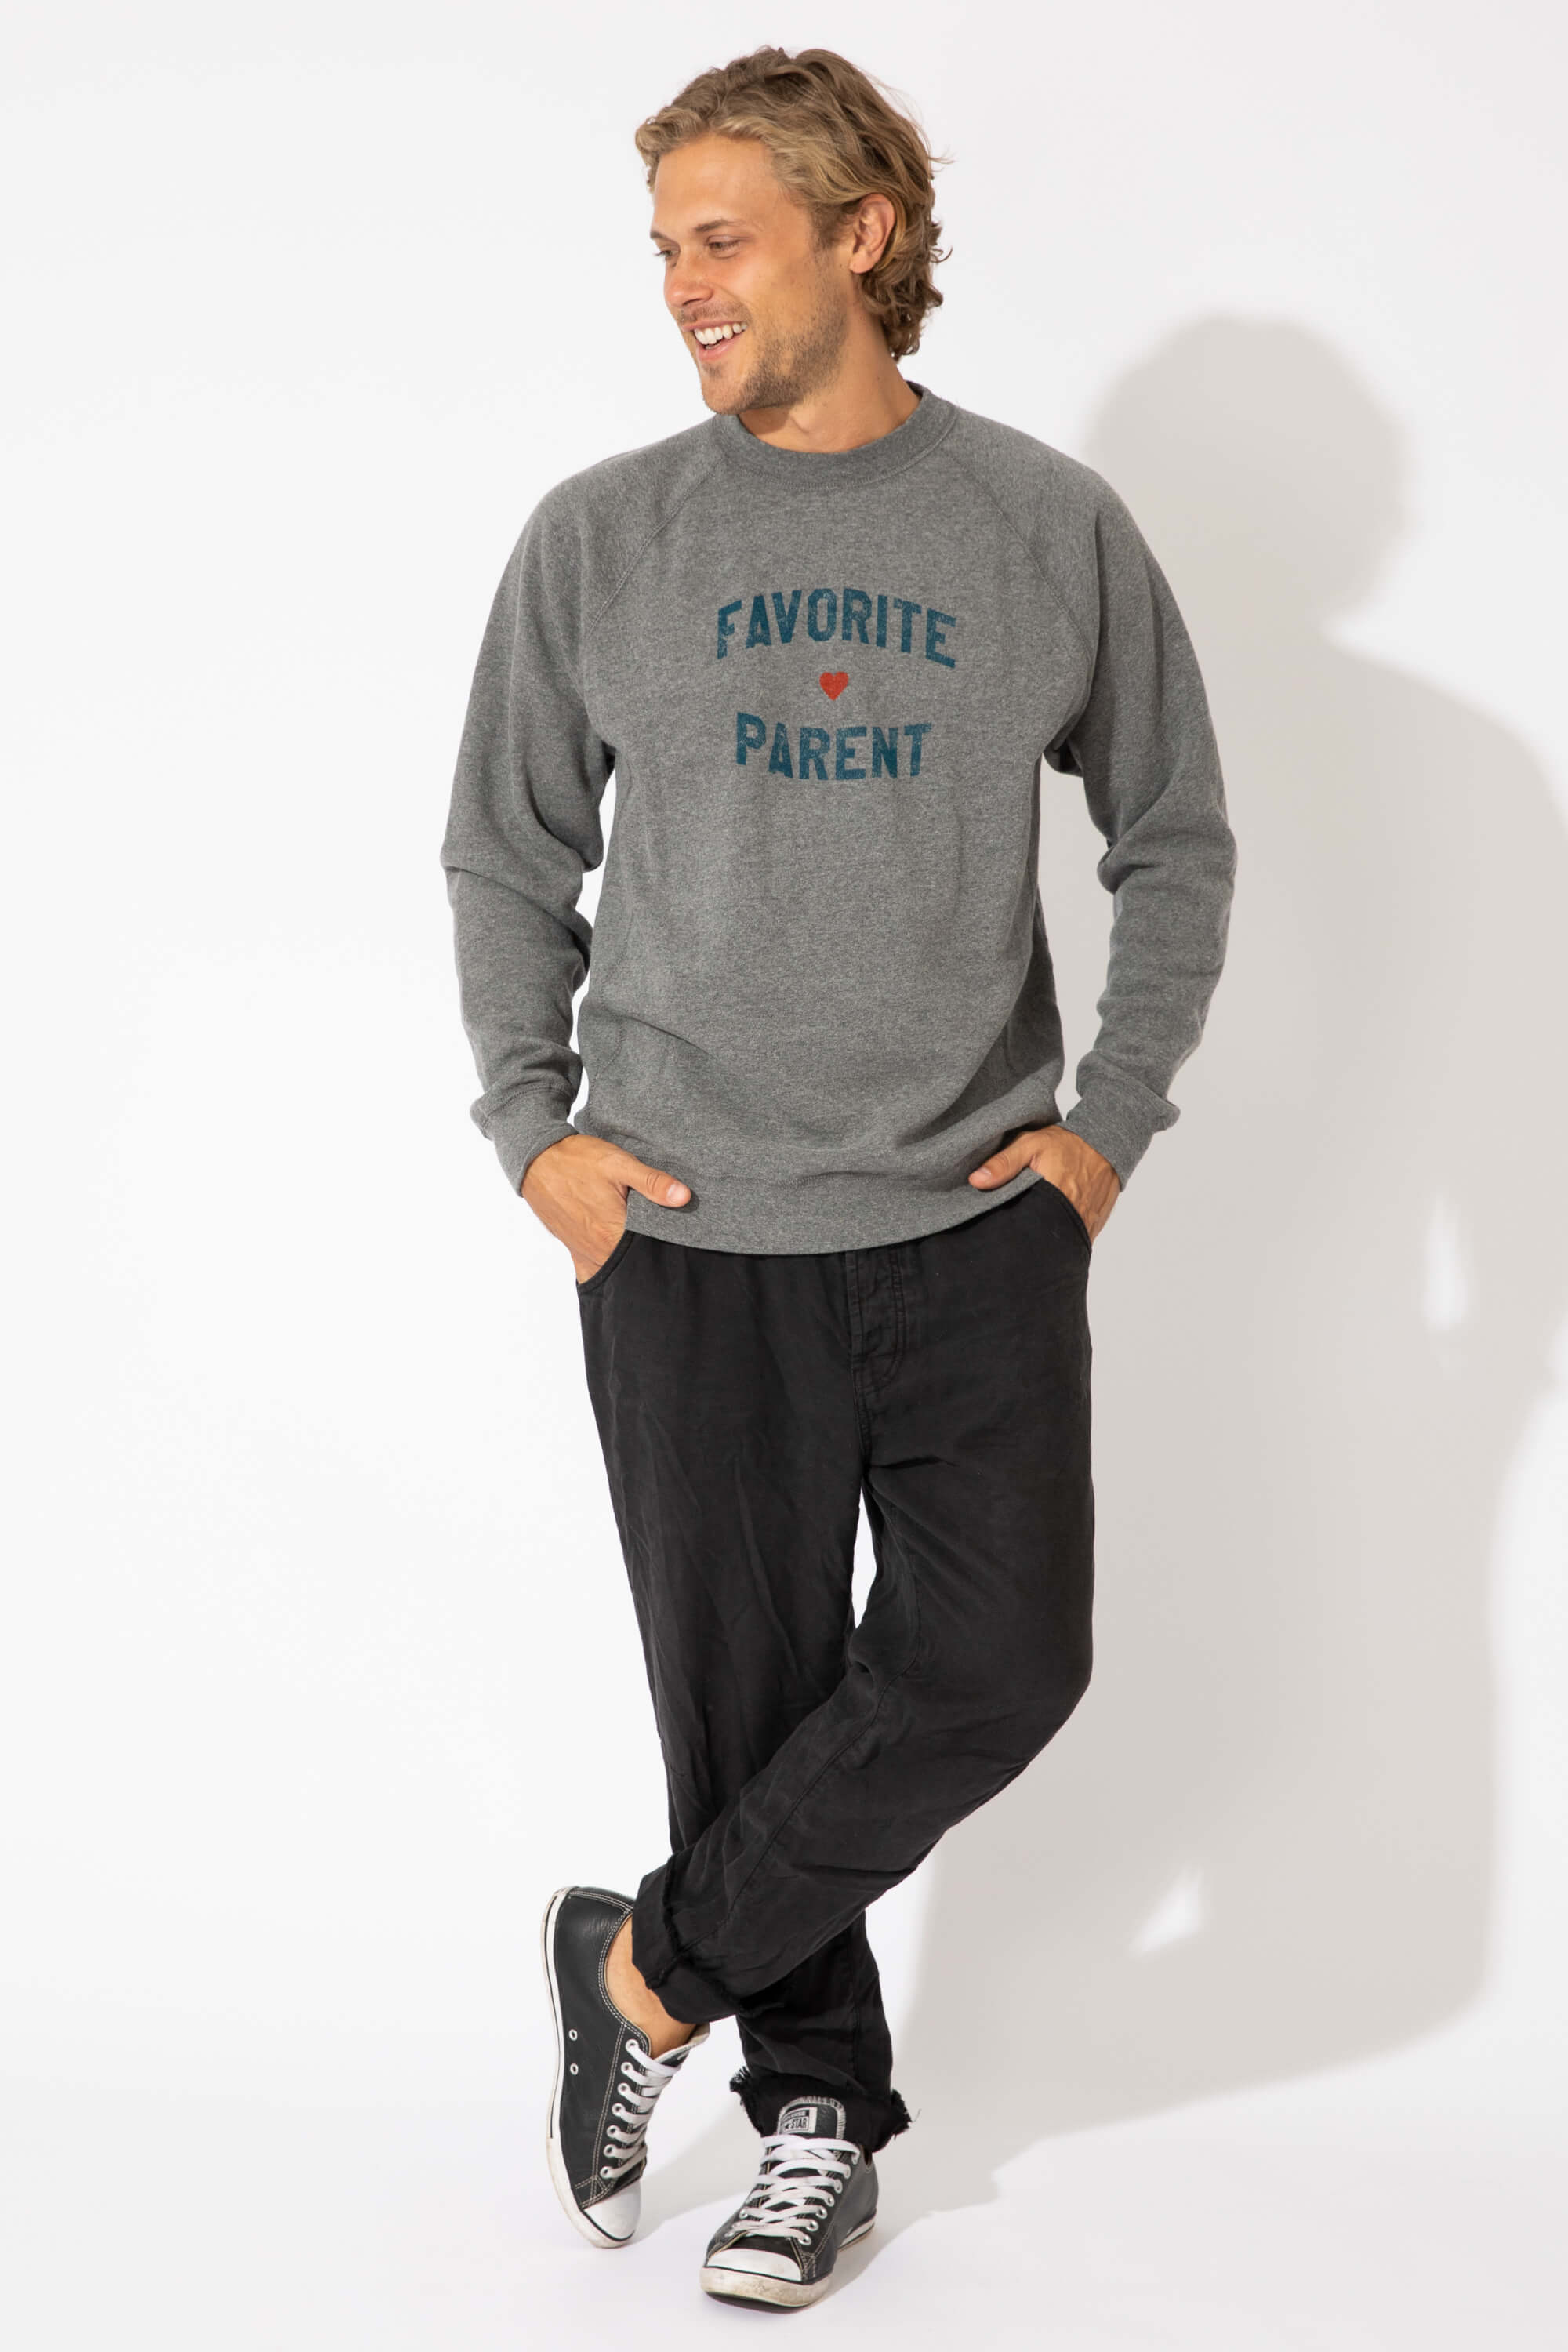 FAVORITE PARENT UNISEX LOOSE CREW SWEATSHIRT